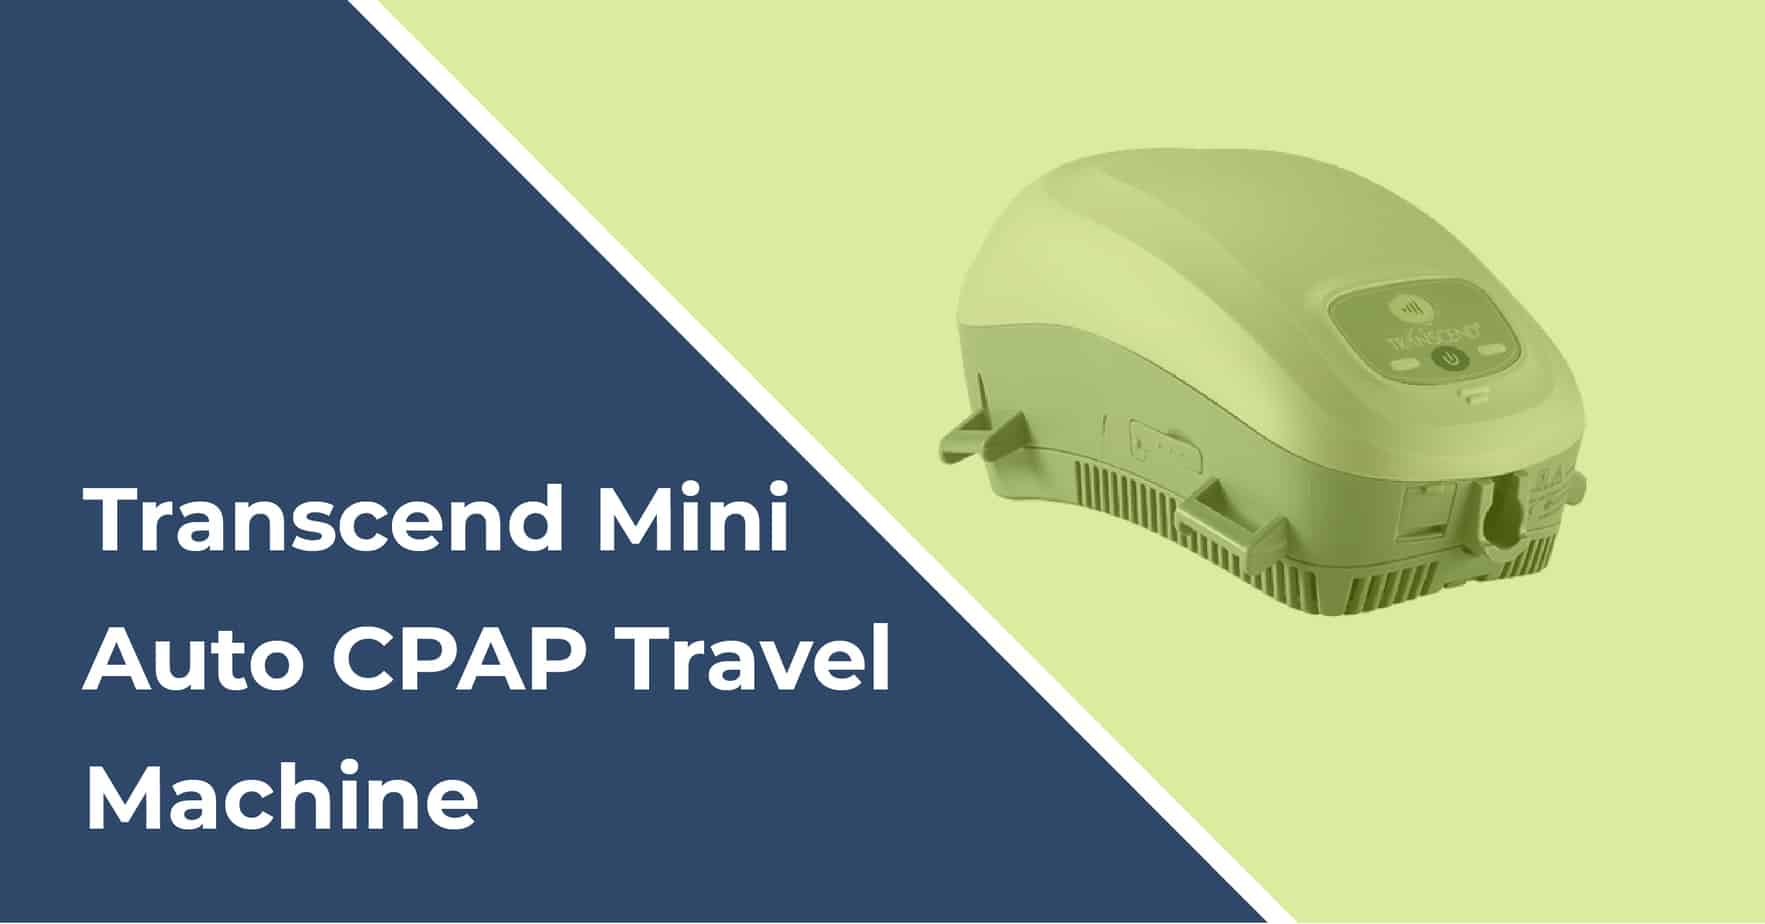 transcend mini auto cpap travel machine